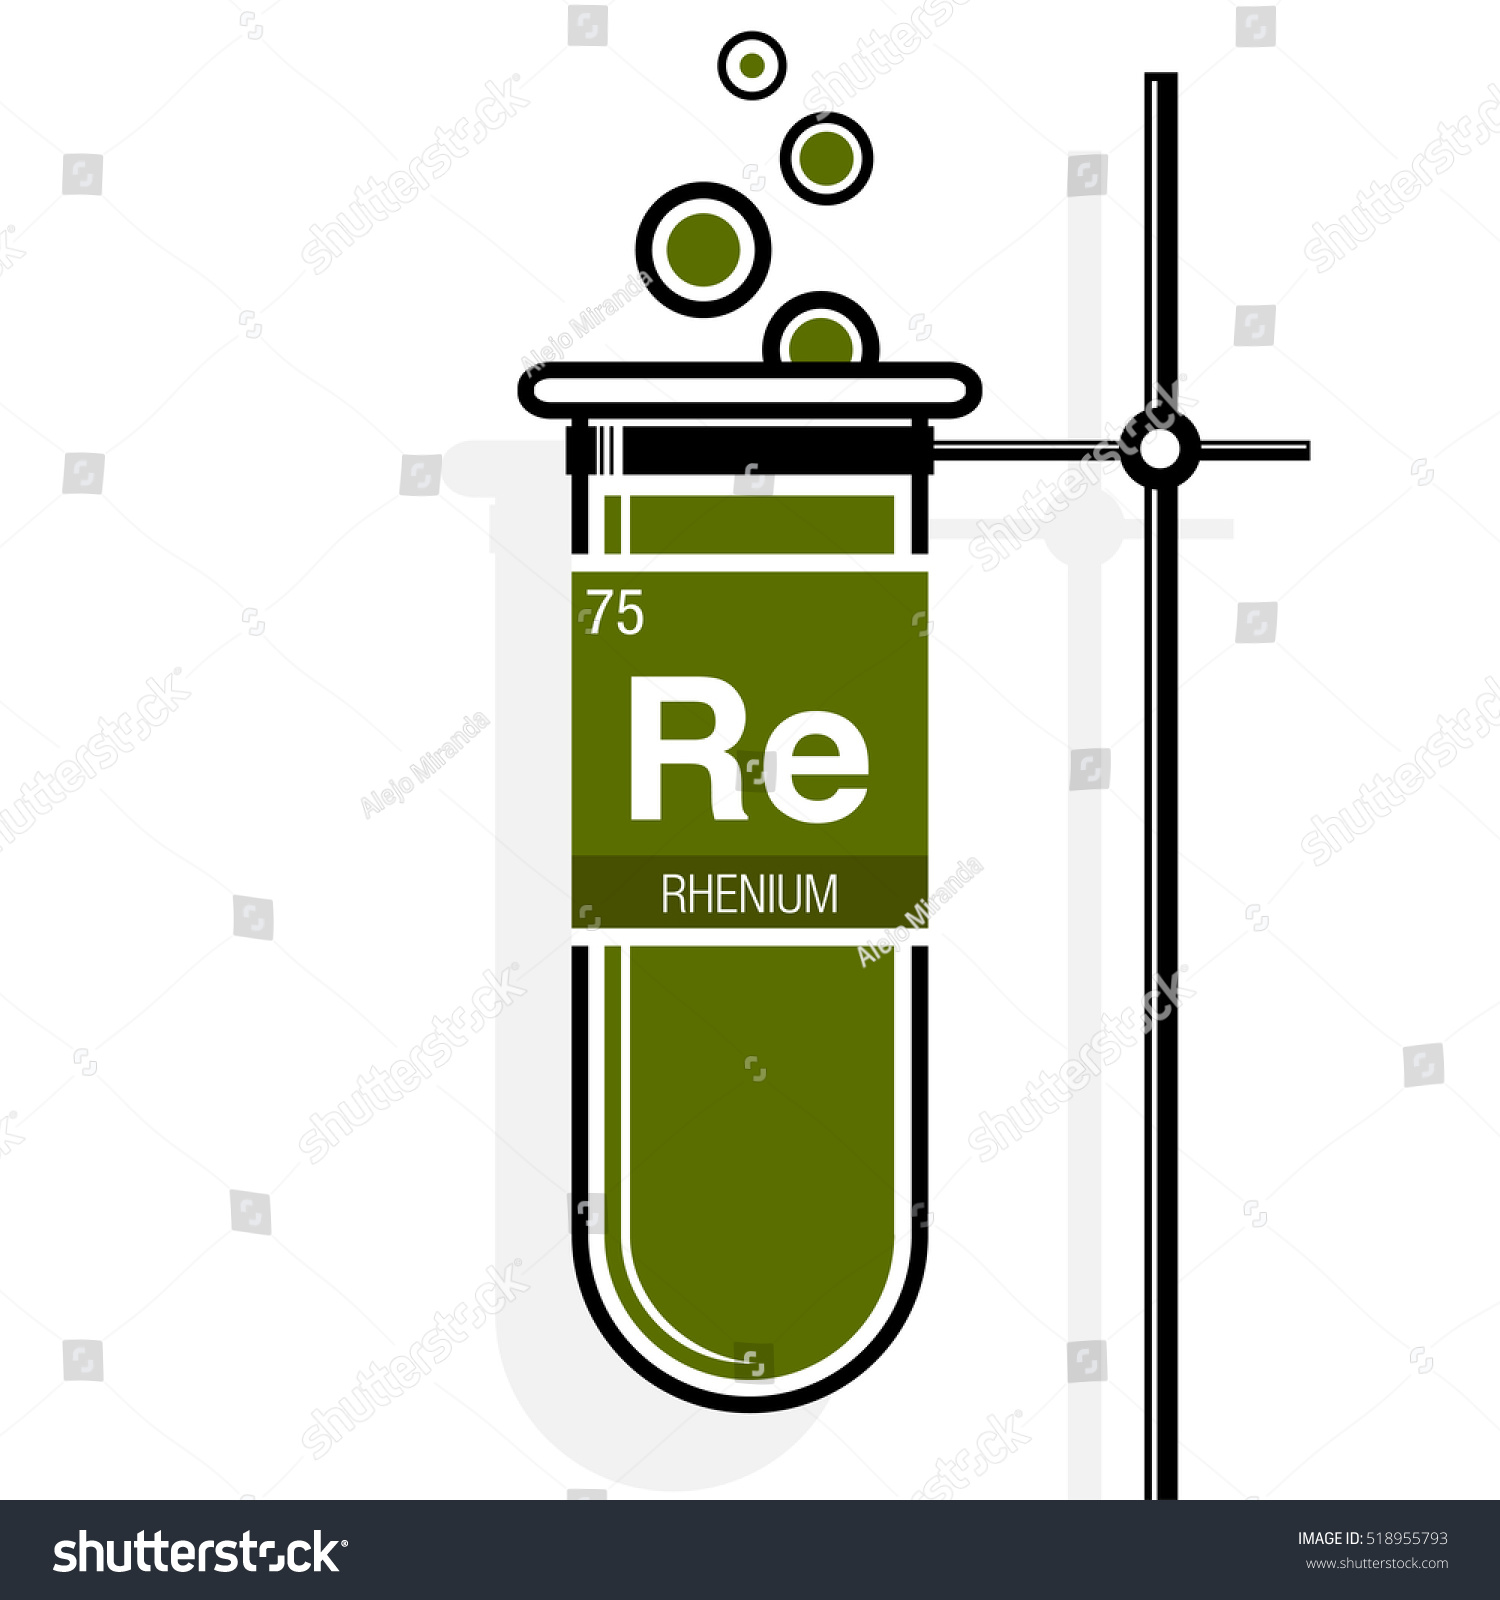 Wikipedia periodic table choice image open microsoft project file element 75 periodic table choice image periodic table images stock vector rhenium symbol on label in gamestrikefo Choice Image